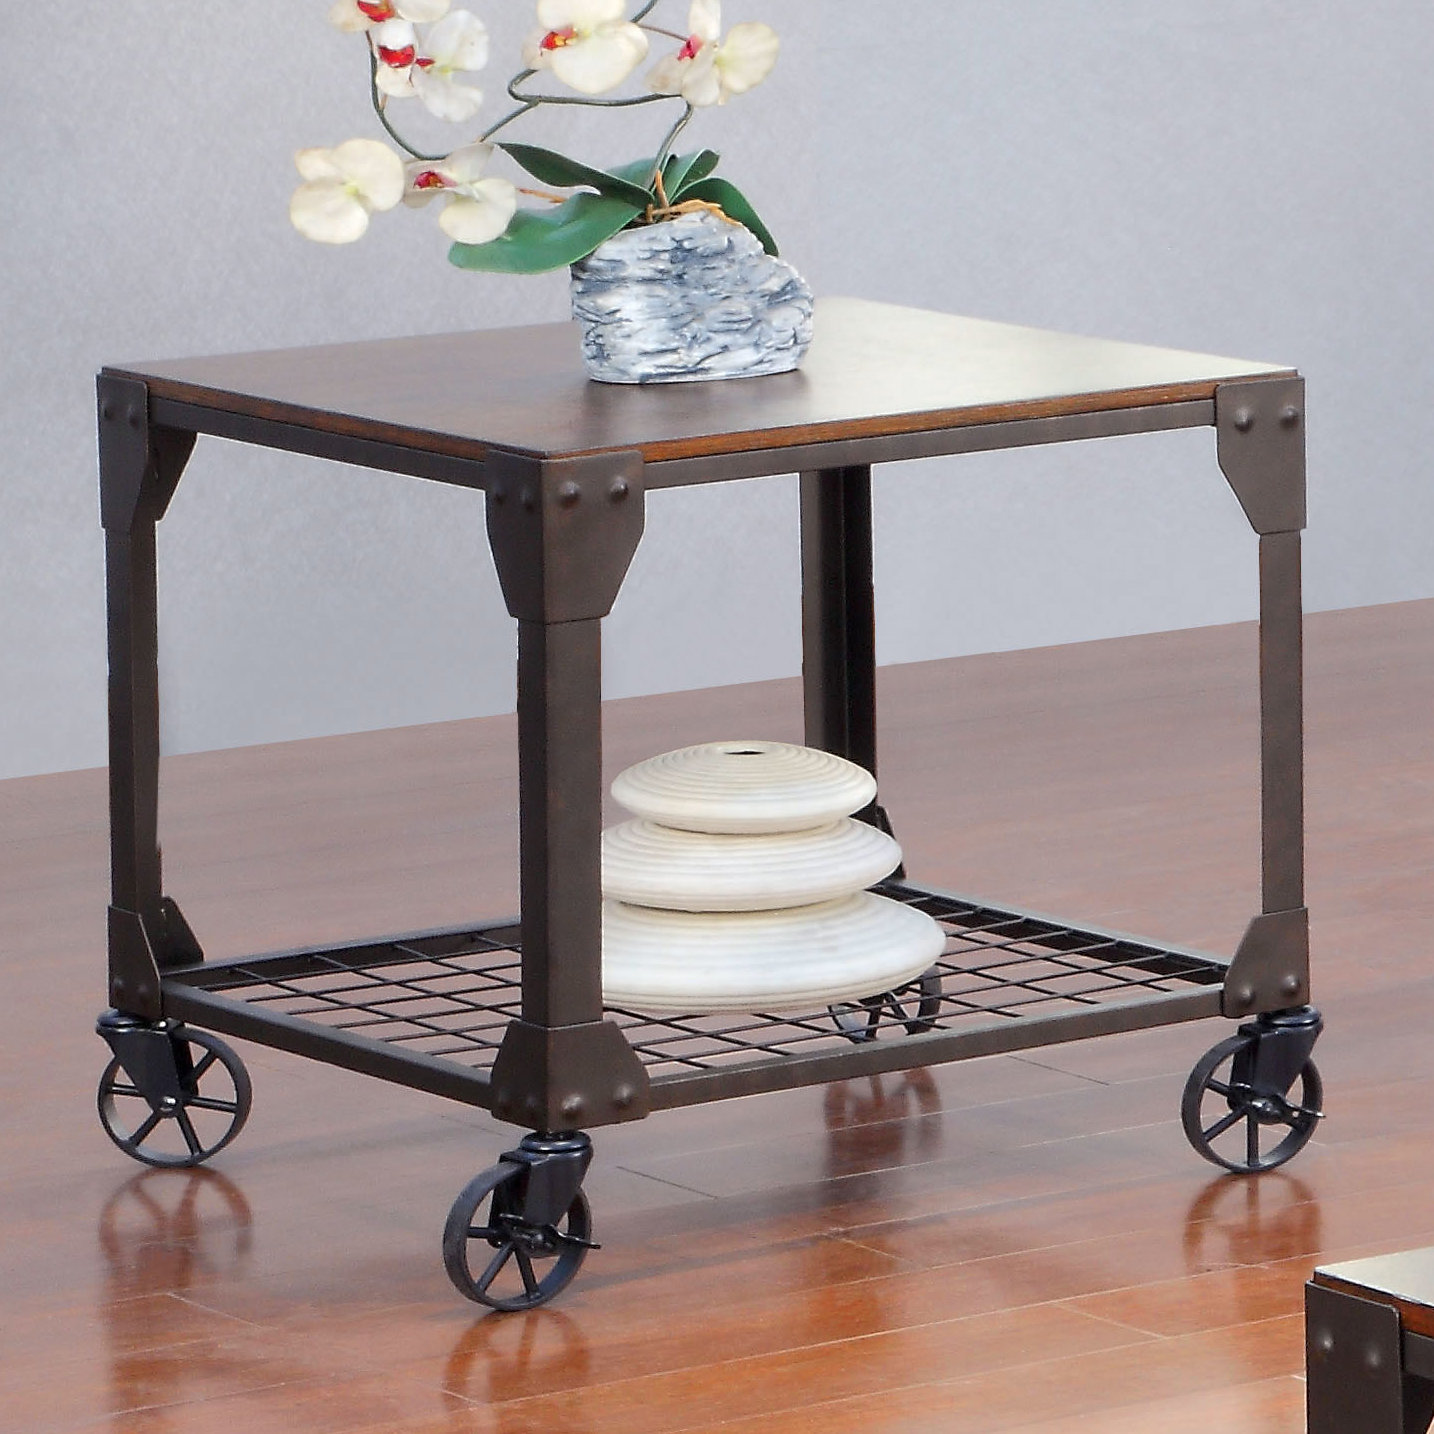 end table with wheels hobart accent interior home decoration stump side clear acrylic trunk coffee small white entry circle wood furniture elm console ashley set pier one throw